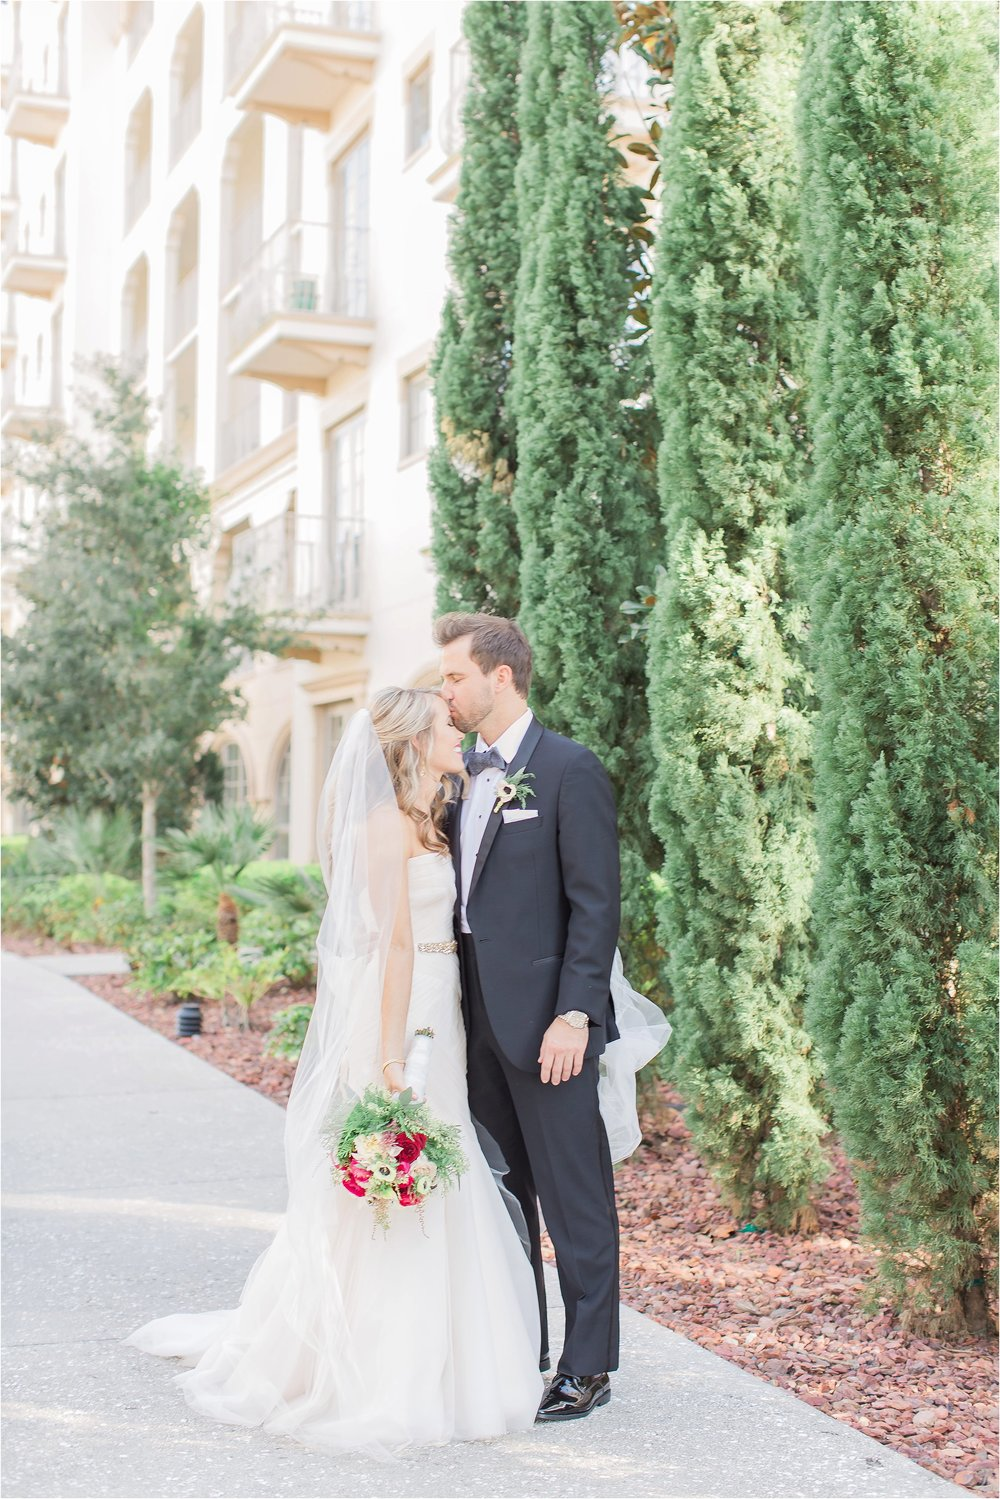 Casa_Feliz_Alfond_Inn_Winter_WeddingndhamGrandWedding_0073.jpg